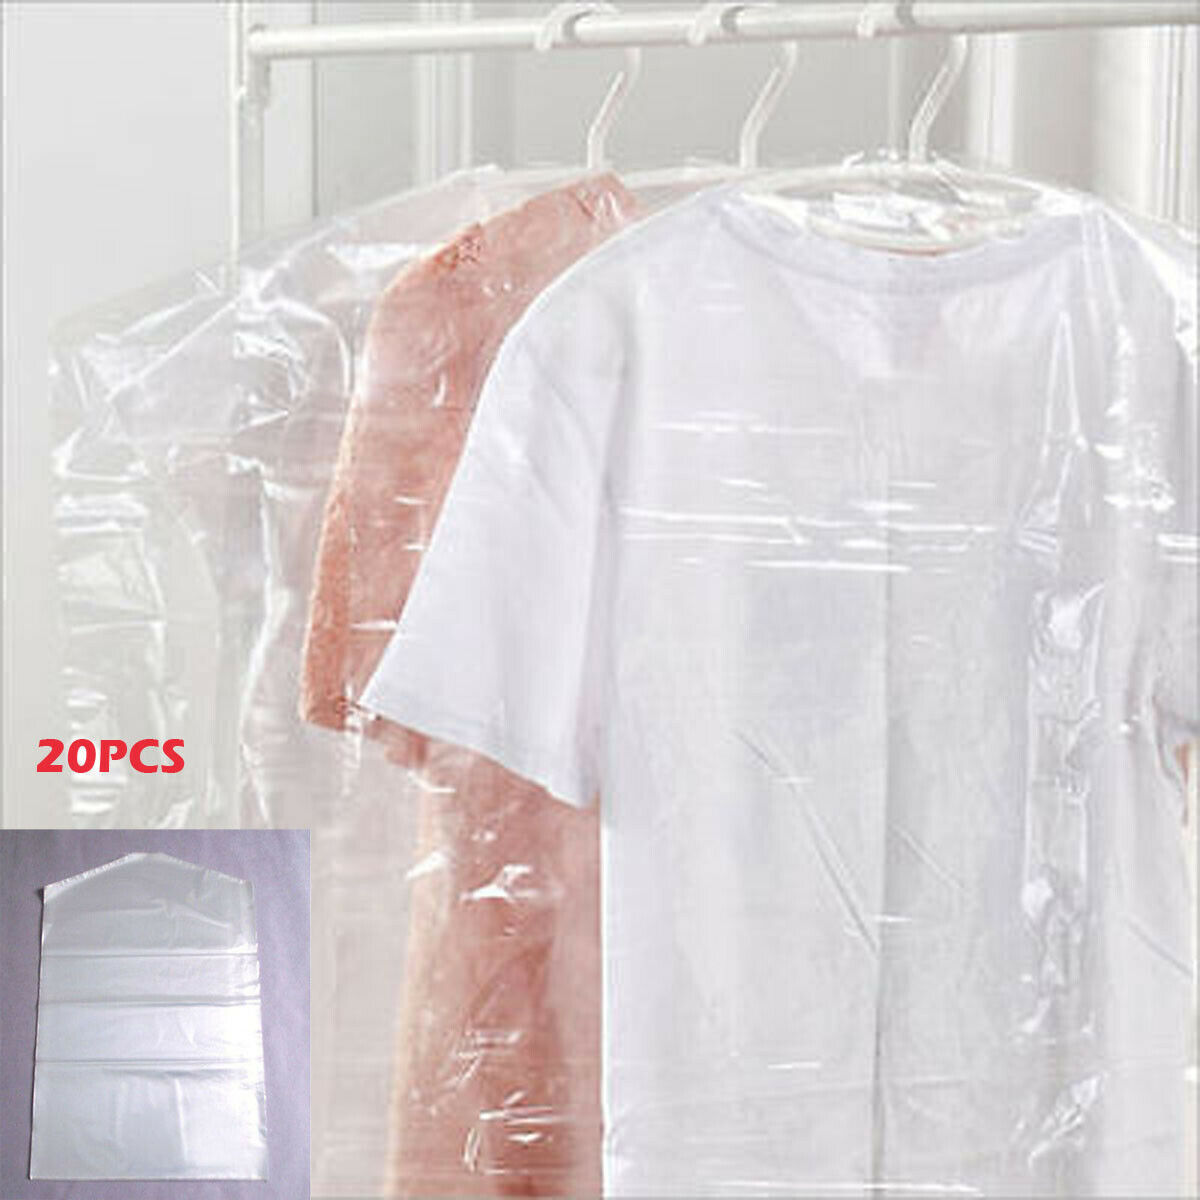 20x Vacuum Bags For Storing Clothes Garment Suit Dust Cover Protector Wardrobe Storage Bag Cloth Hanging Garment Coat Dustproof